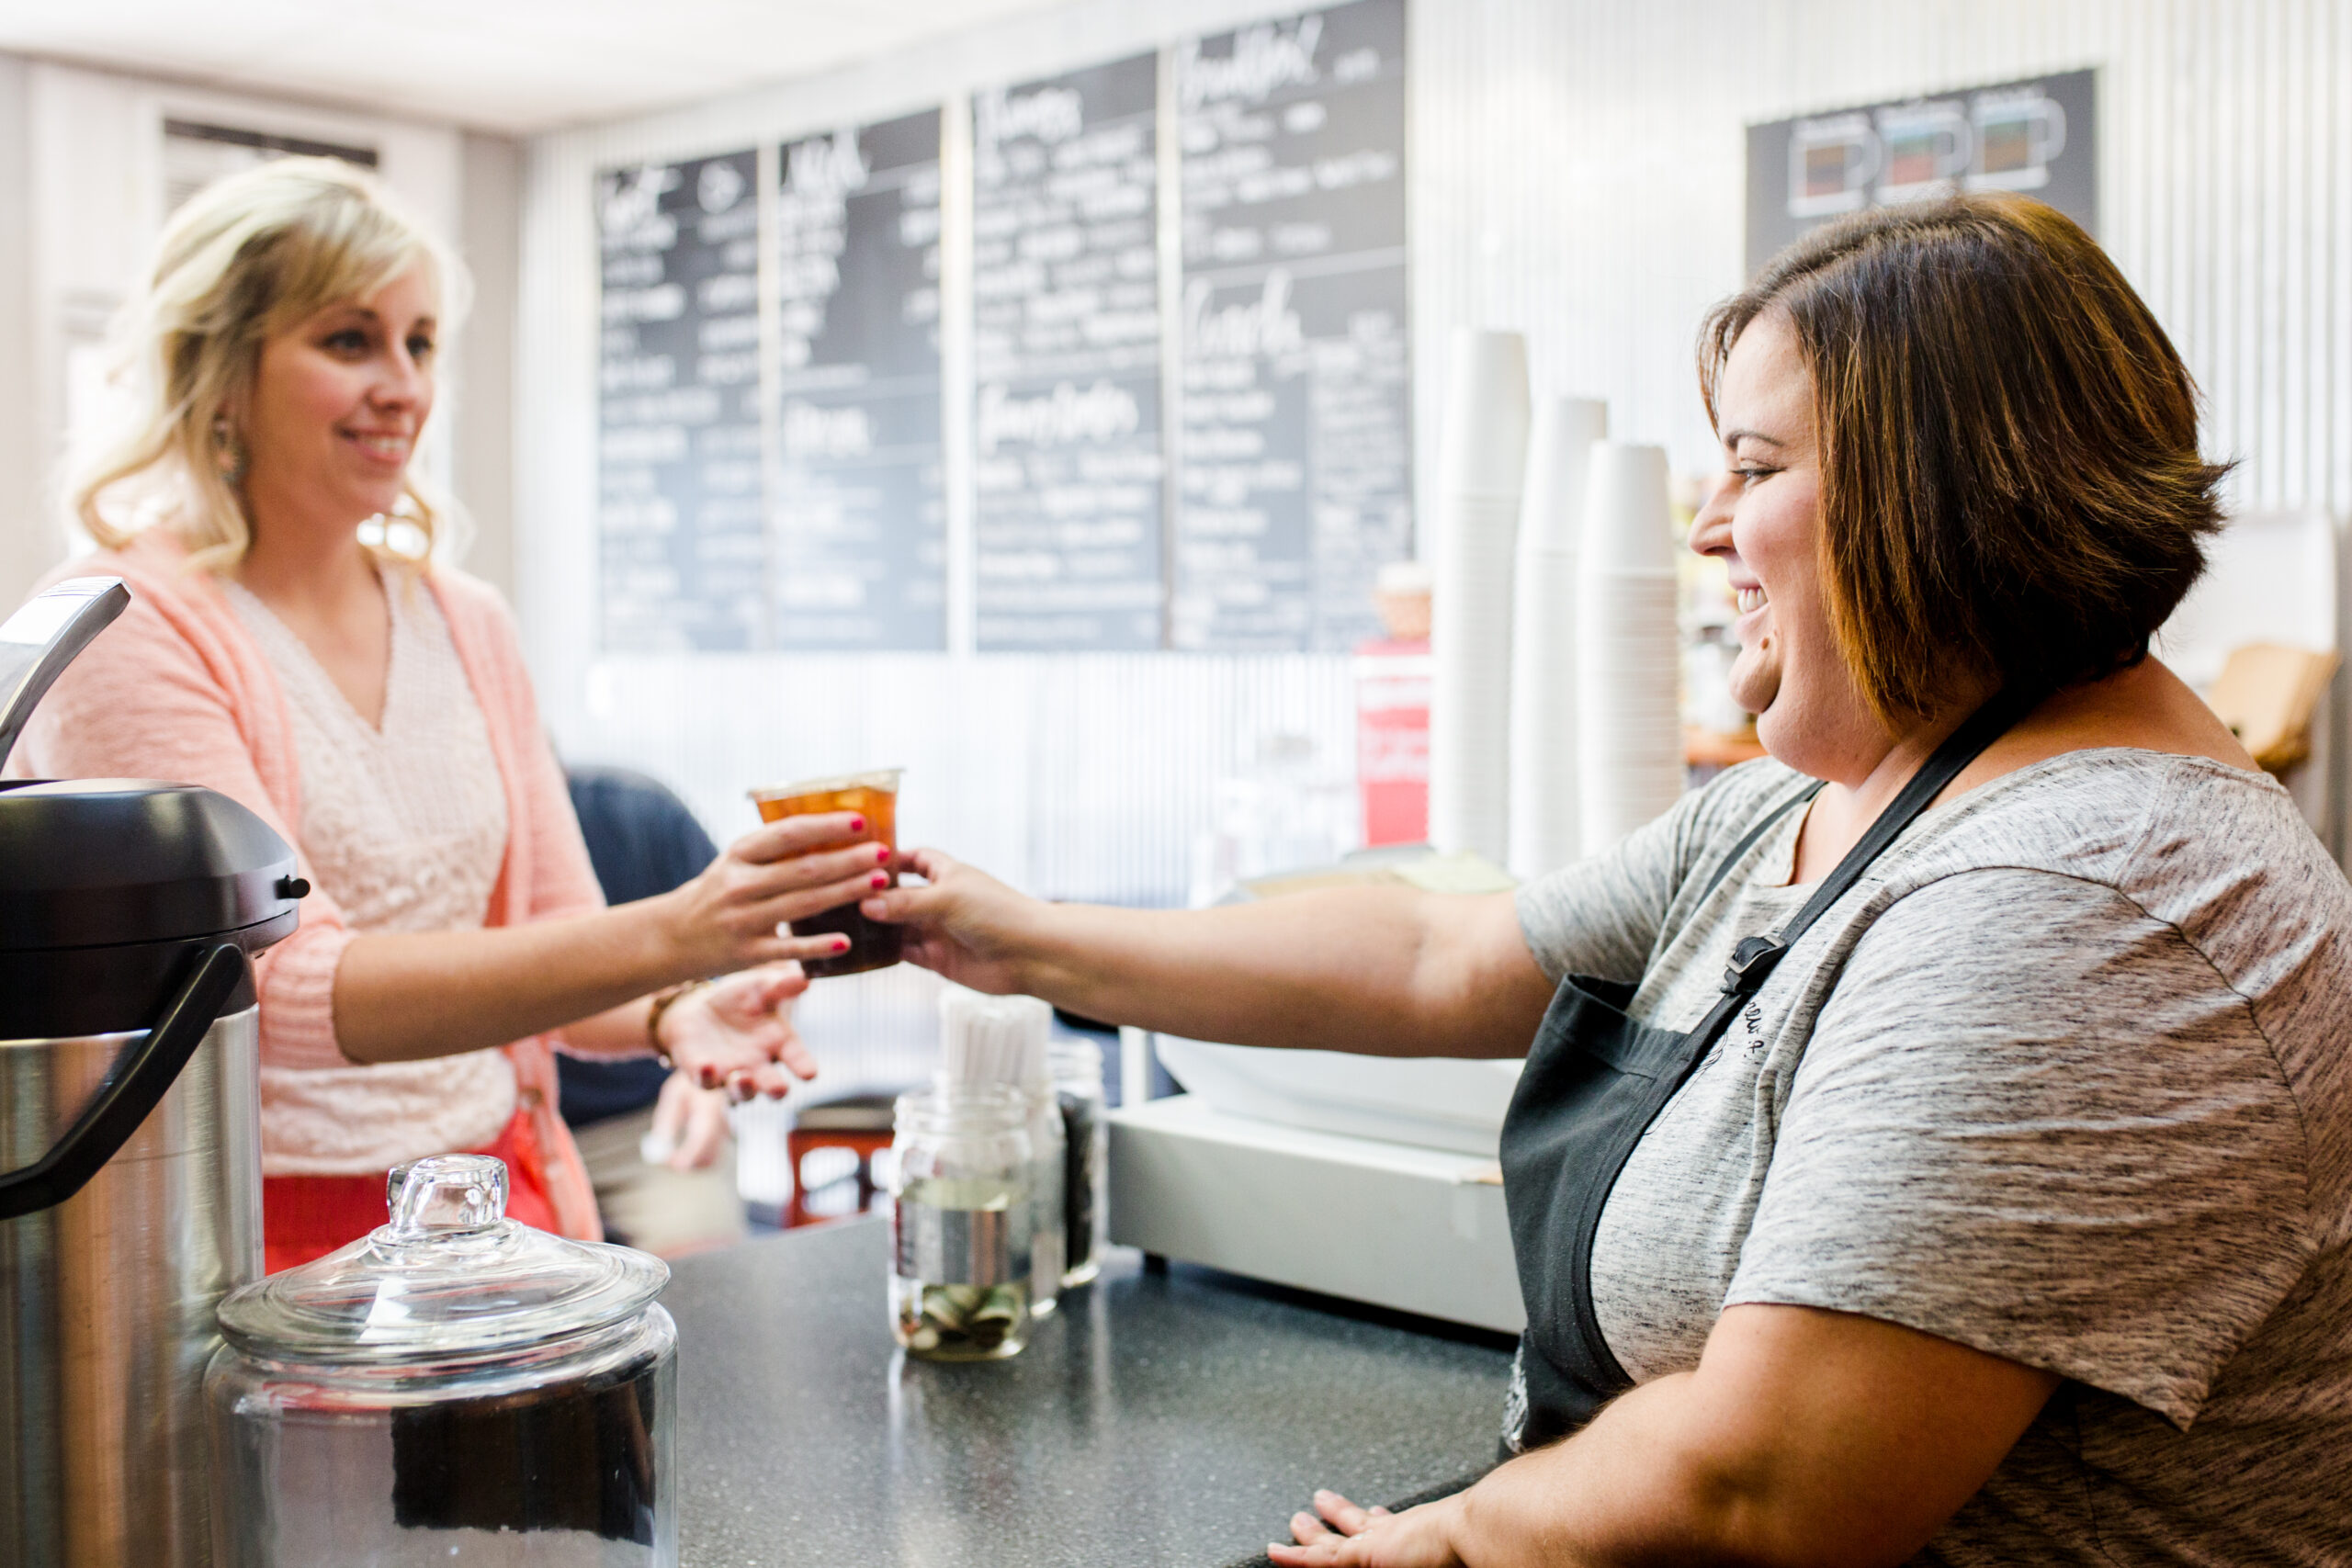 Cashier at coffee shop hands iced coffee to customer